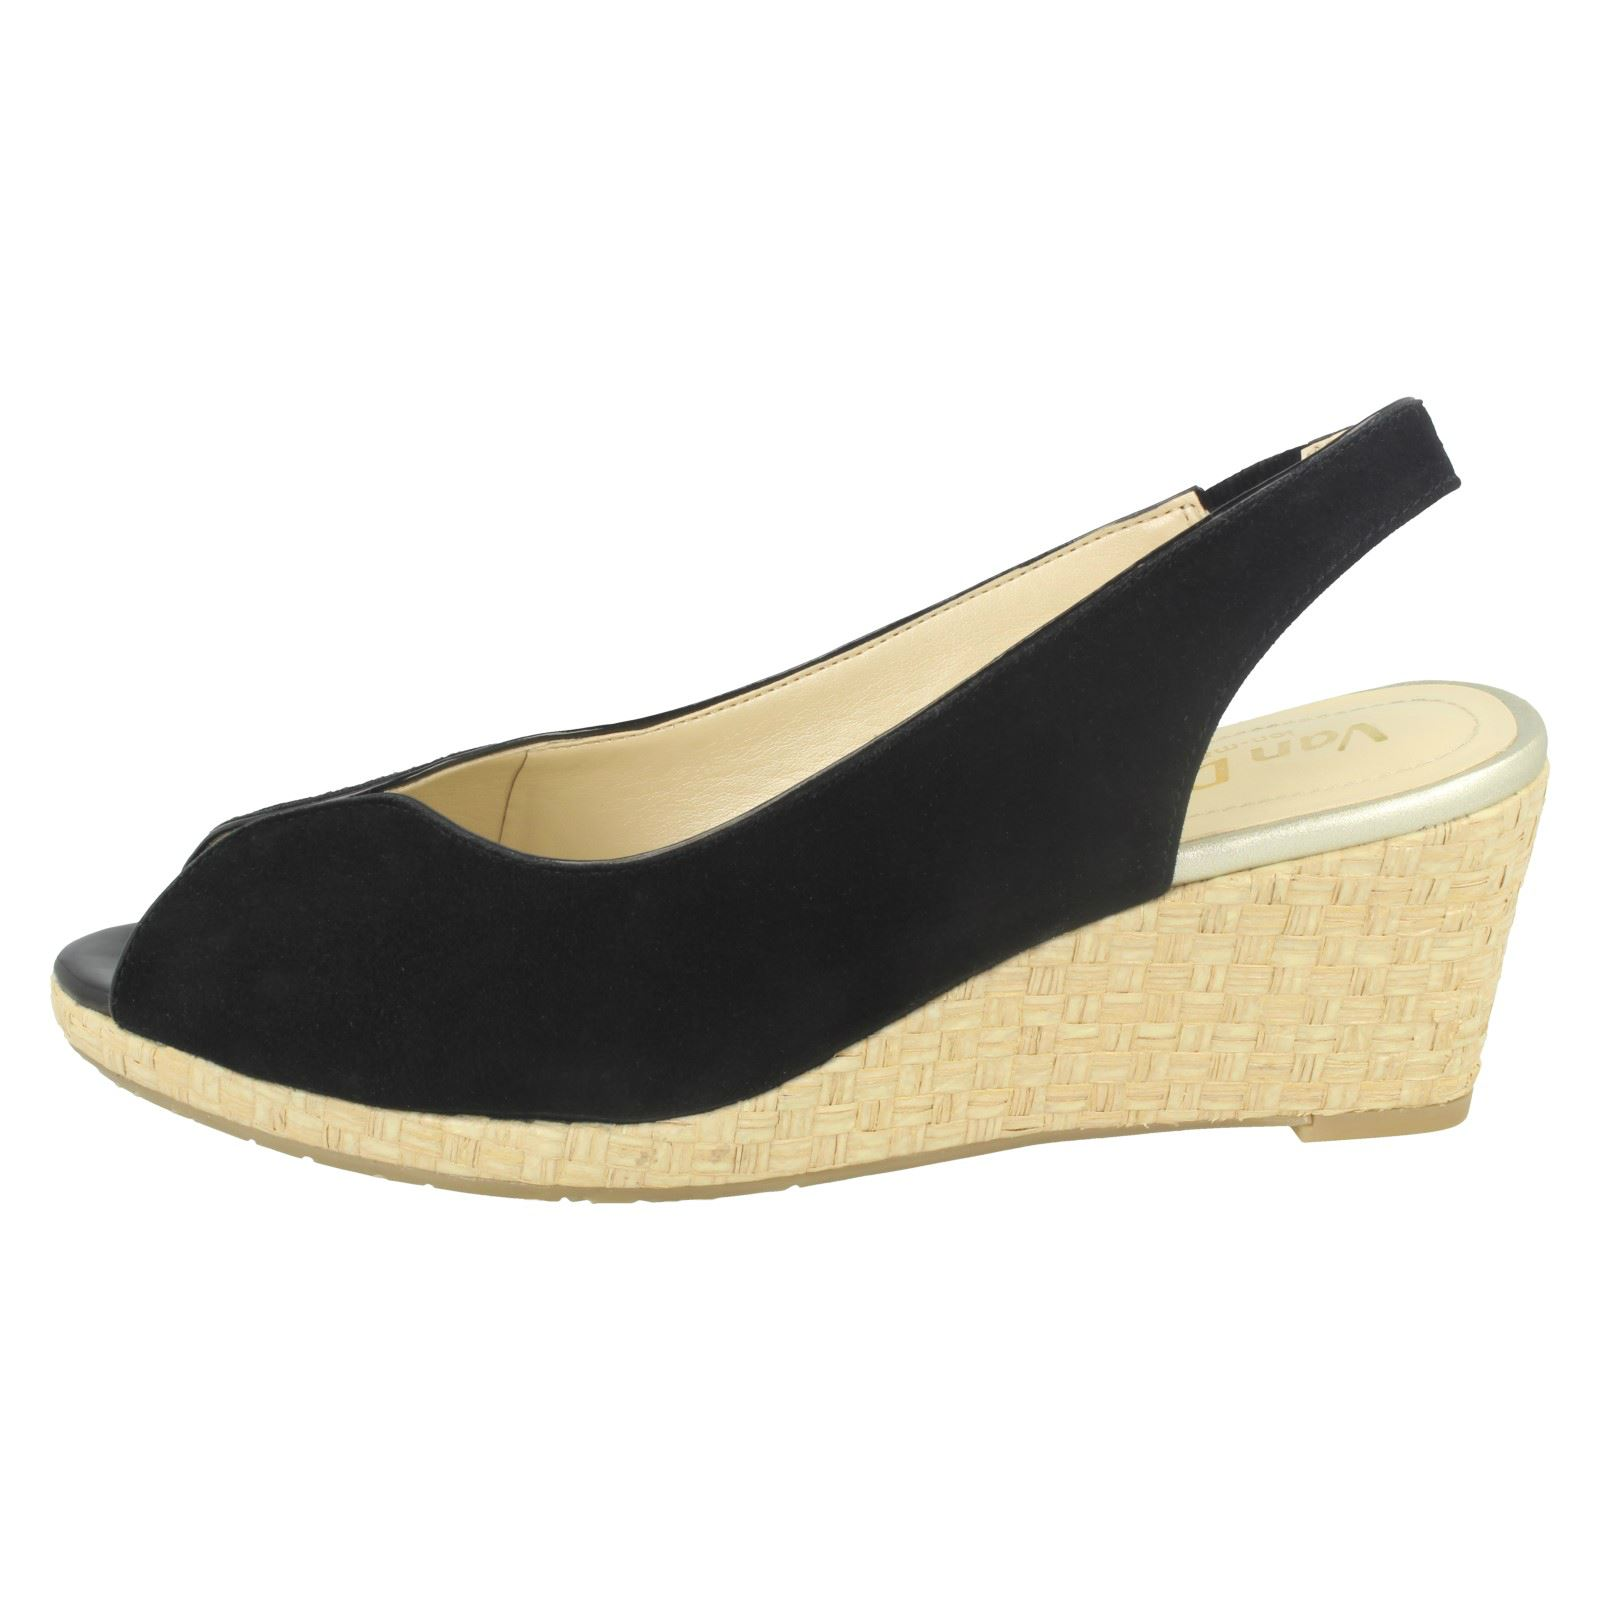 Ladies-Van-Dal-Leather-Wedge-Sandal-With-Woven-Detail-Avalon thumbnail 4